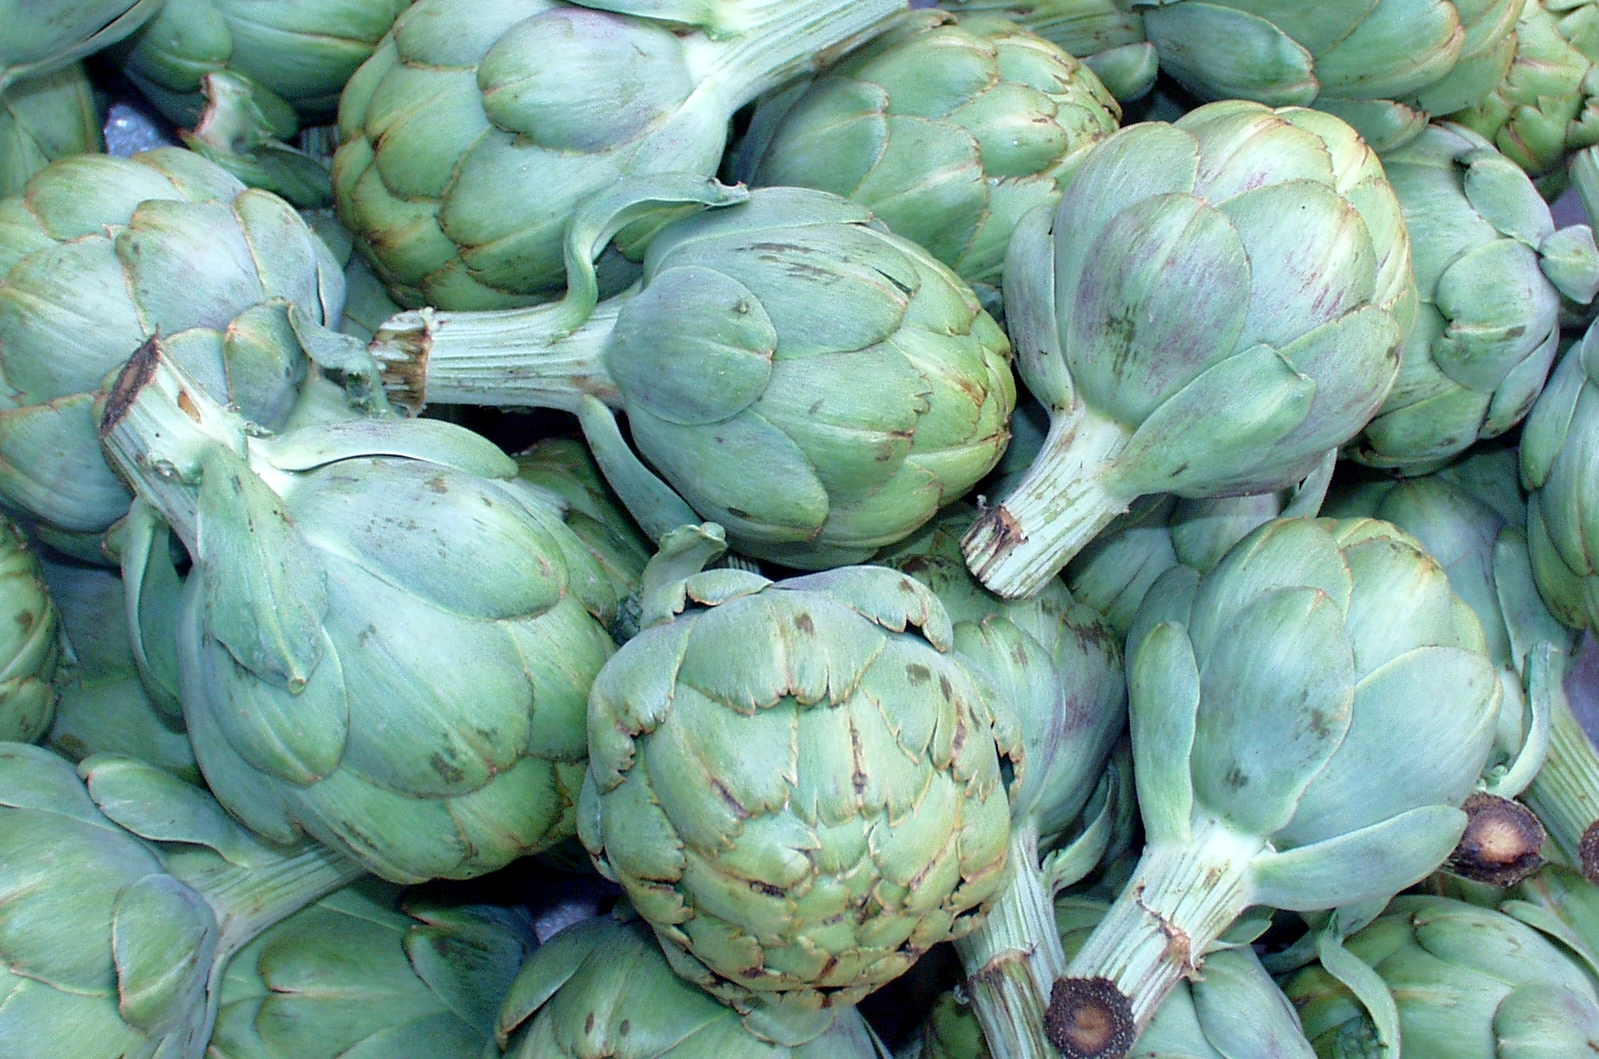 Organic artichokes from Billy's. Photo copyright 2009 by Zachary D. Lyons.